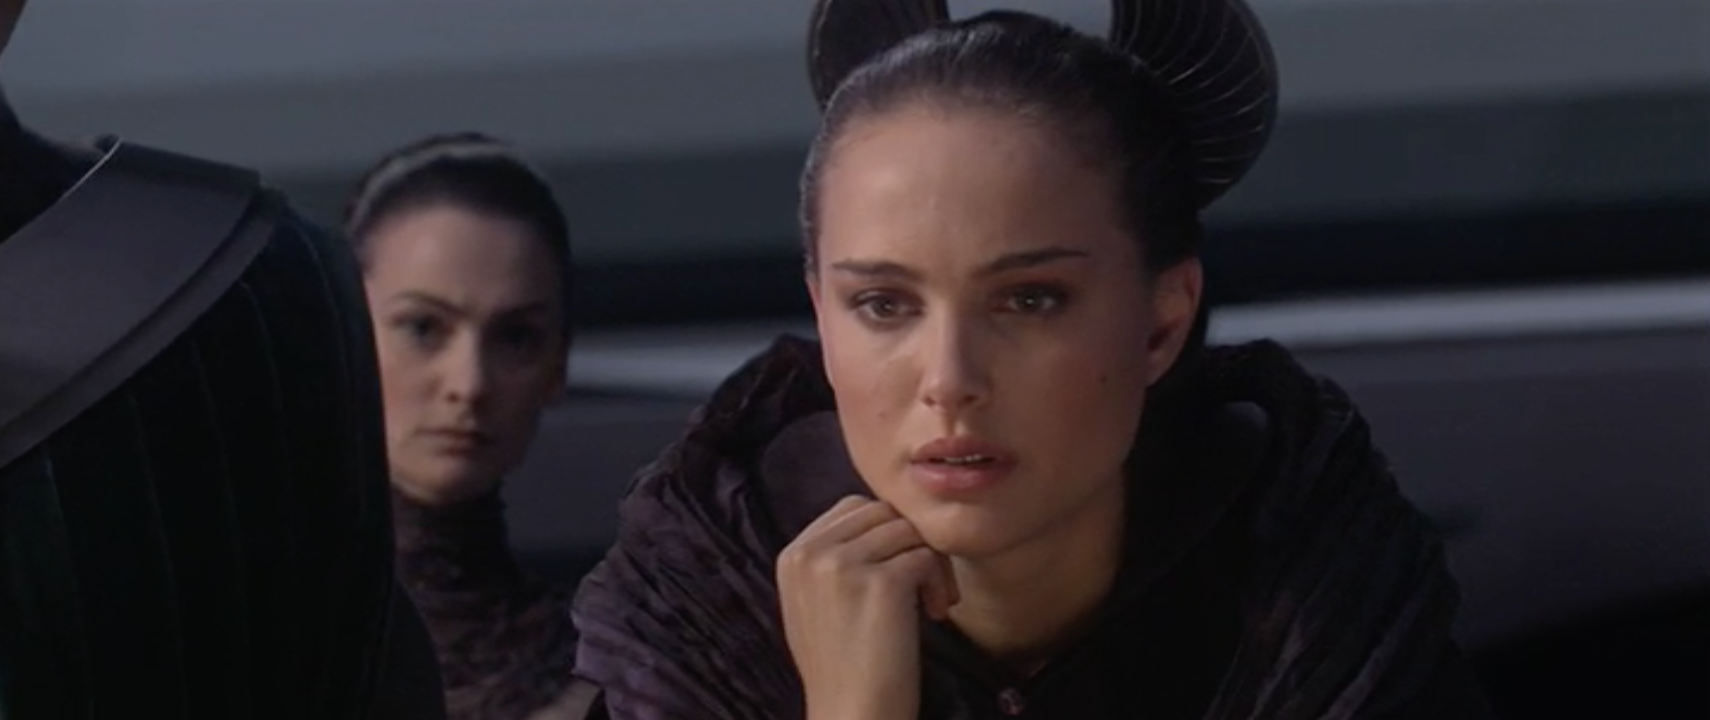 The Evolution Of Women In The Star Wars Universe Episode Iii Revenge Of The Sith Fangirl Blog